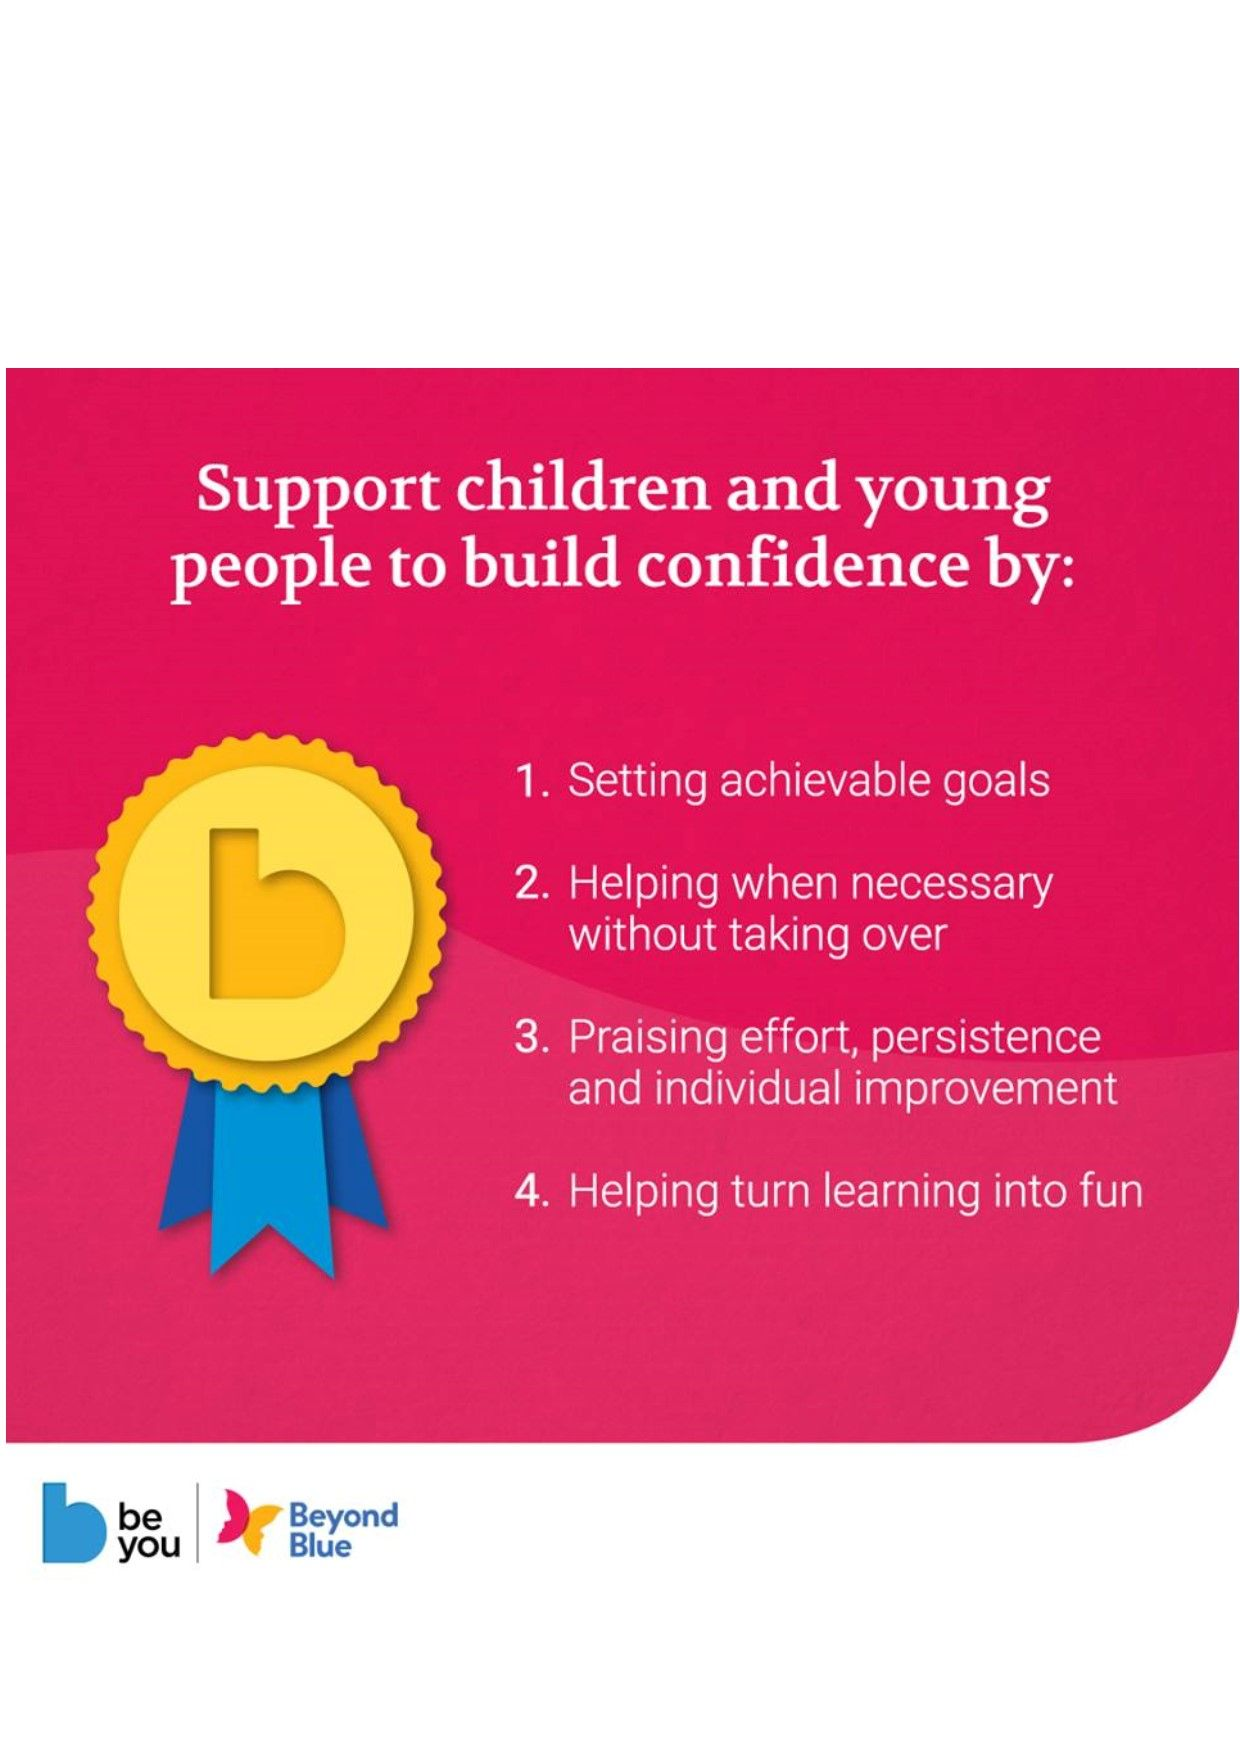 Support Young People And Build Confidence